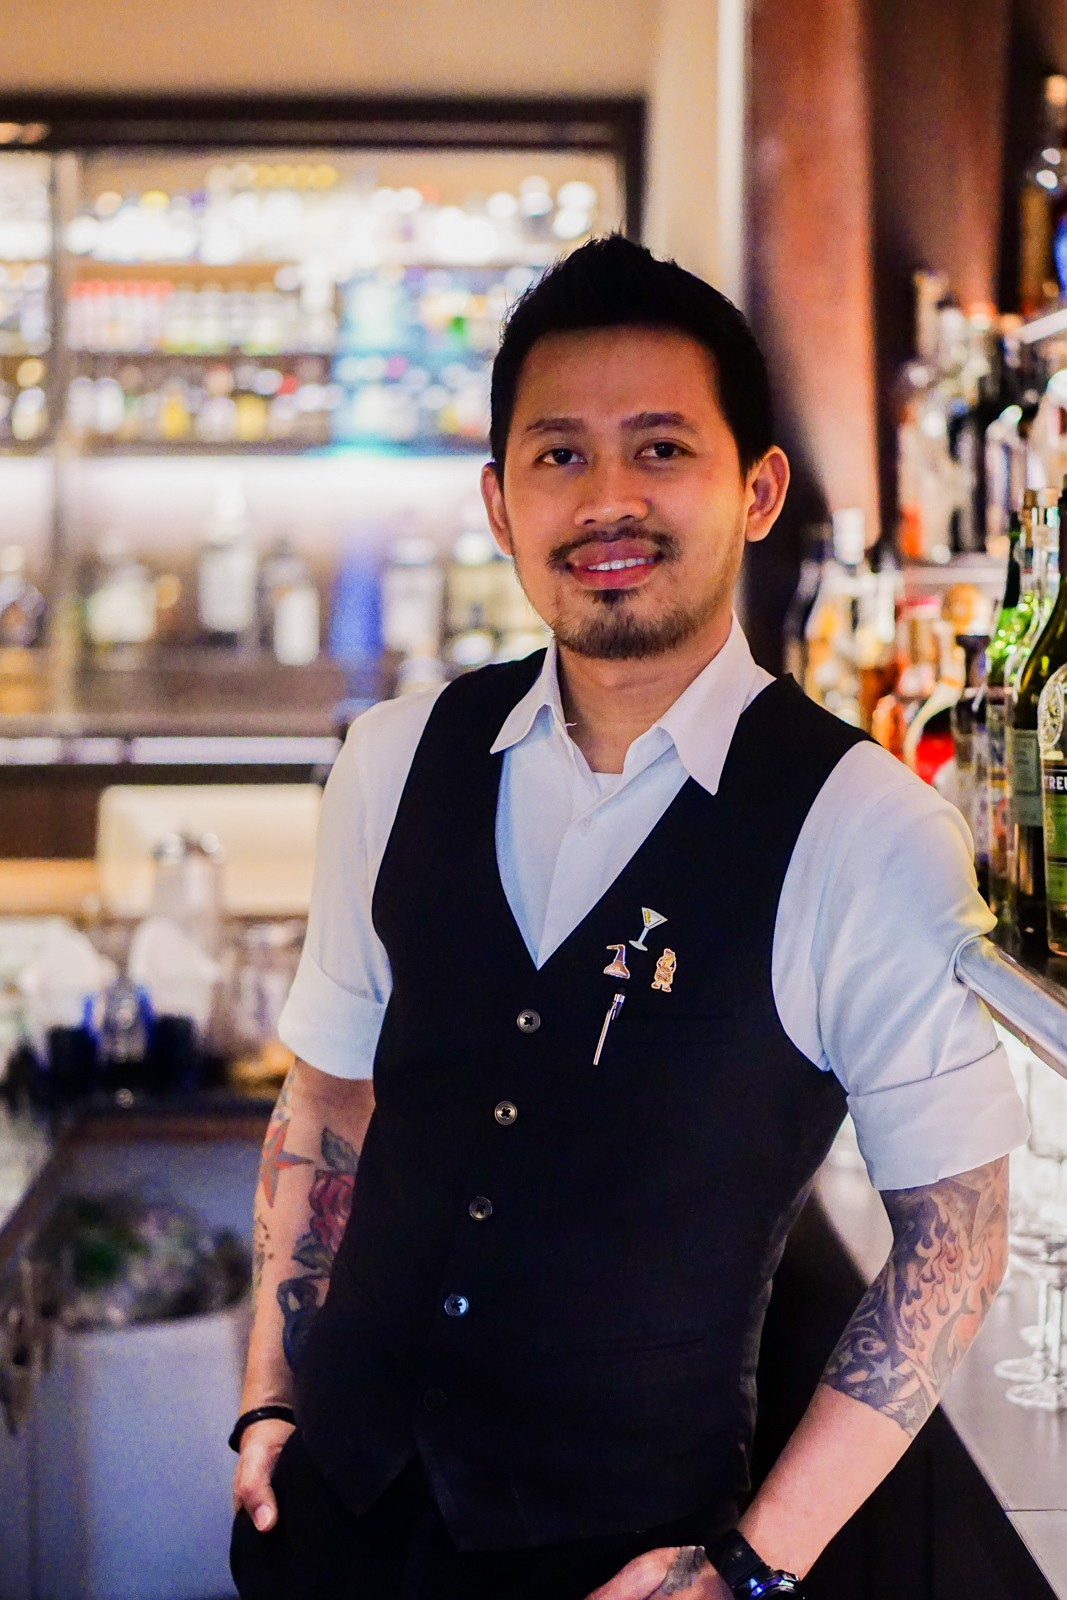 Bartender Indra Sartika for Kei Bar: Kei Bar is a true speakeasy: we are under orders not to reveal its location. What we can say is that the intimate, Ginza-style bar, managed by the ever-brilliant Kendy, offers serene seclusion in one of the busiest parts of the city, with soft jazz playing until the wee hours and a cosmopolitan selection of spirits. Although Kendy was not available, she asked her talented barman Indra Sartika to prepare for The Jakarta Post a delectable creation.